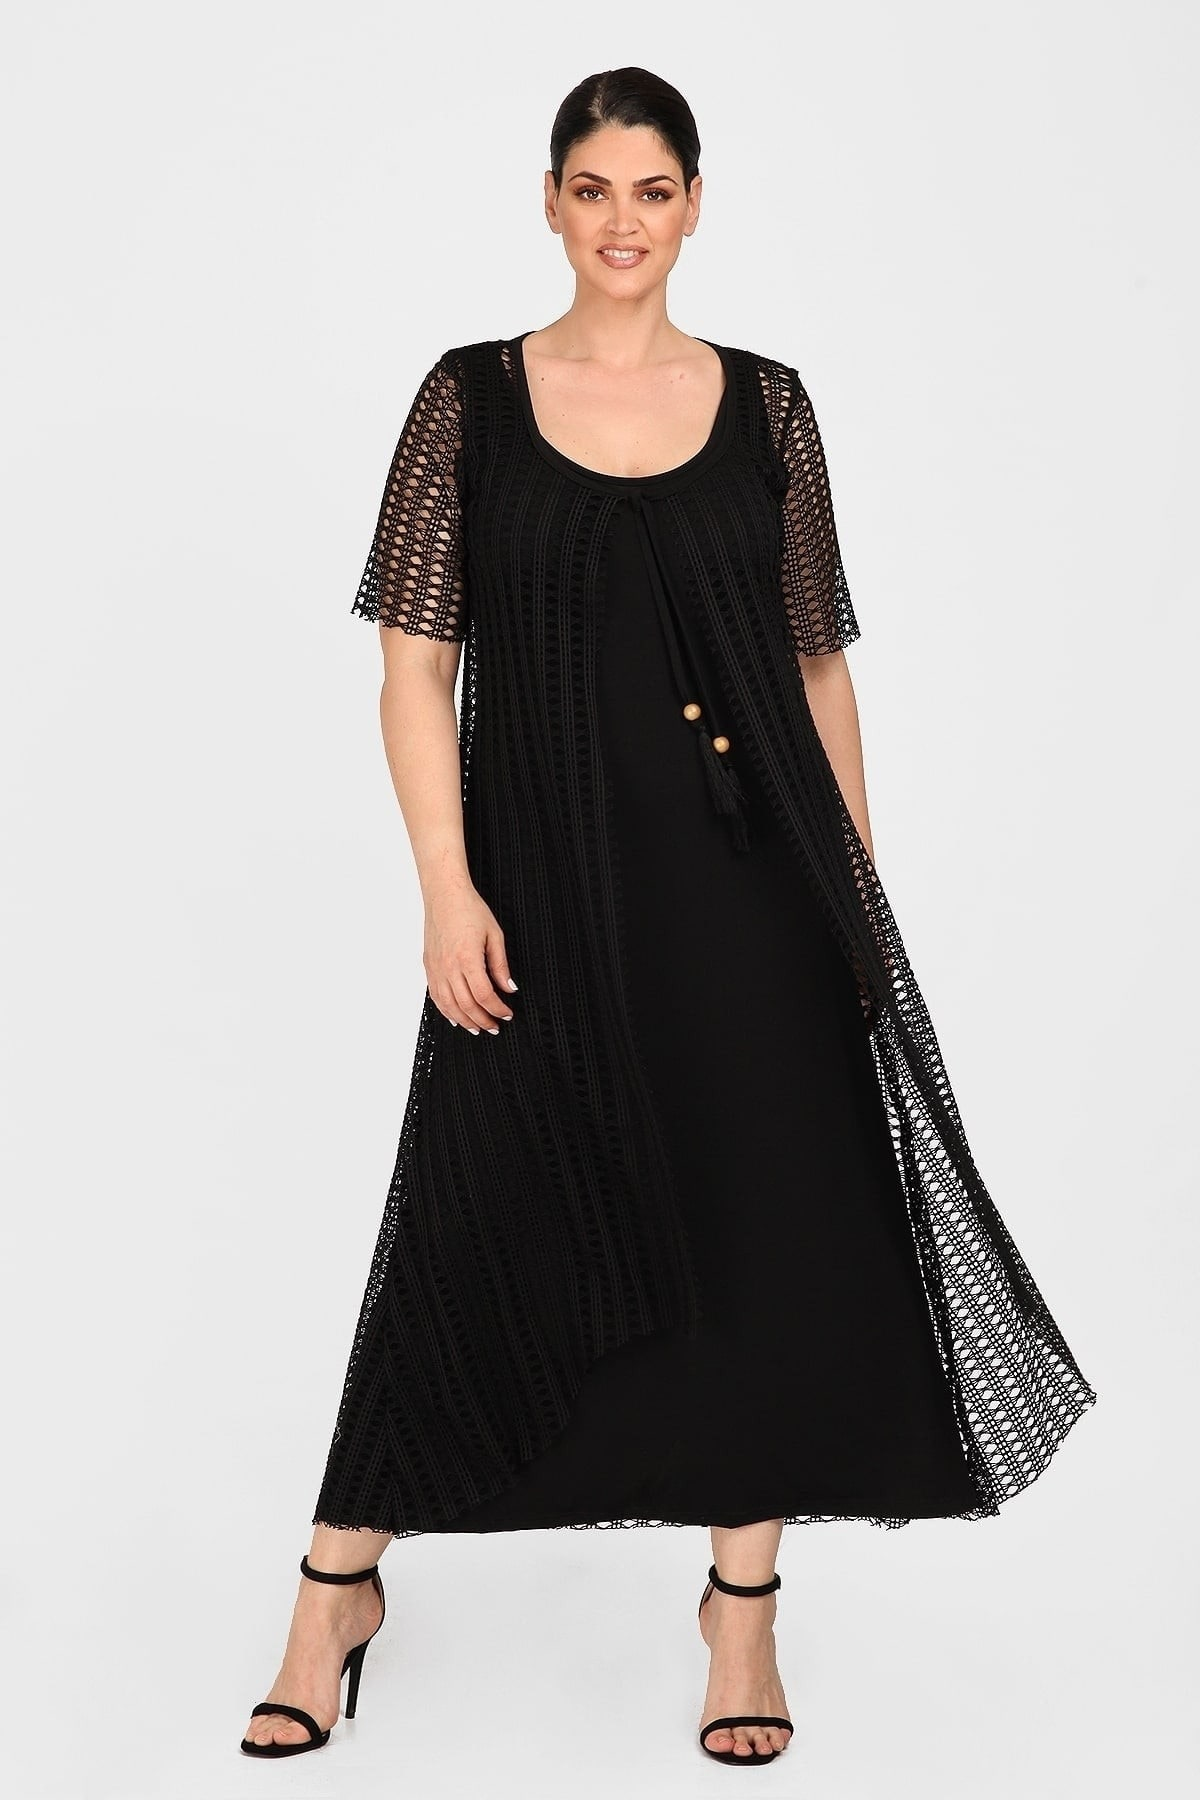 Εvening maxi dress with crochet tunic